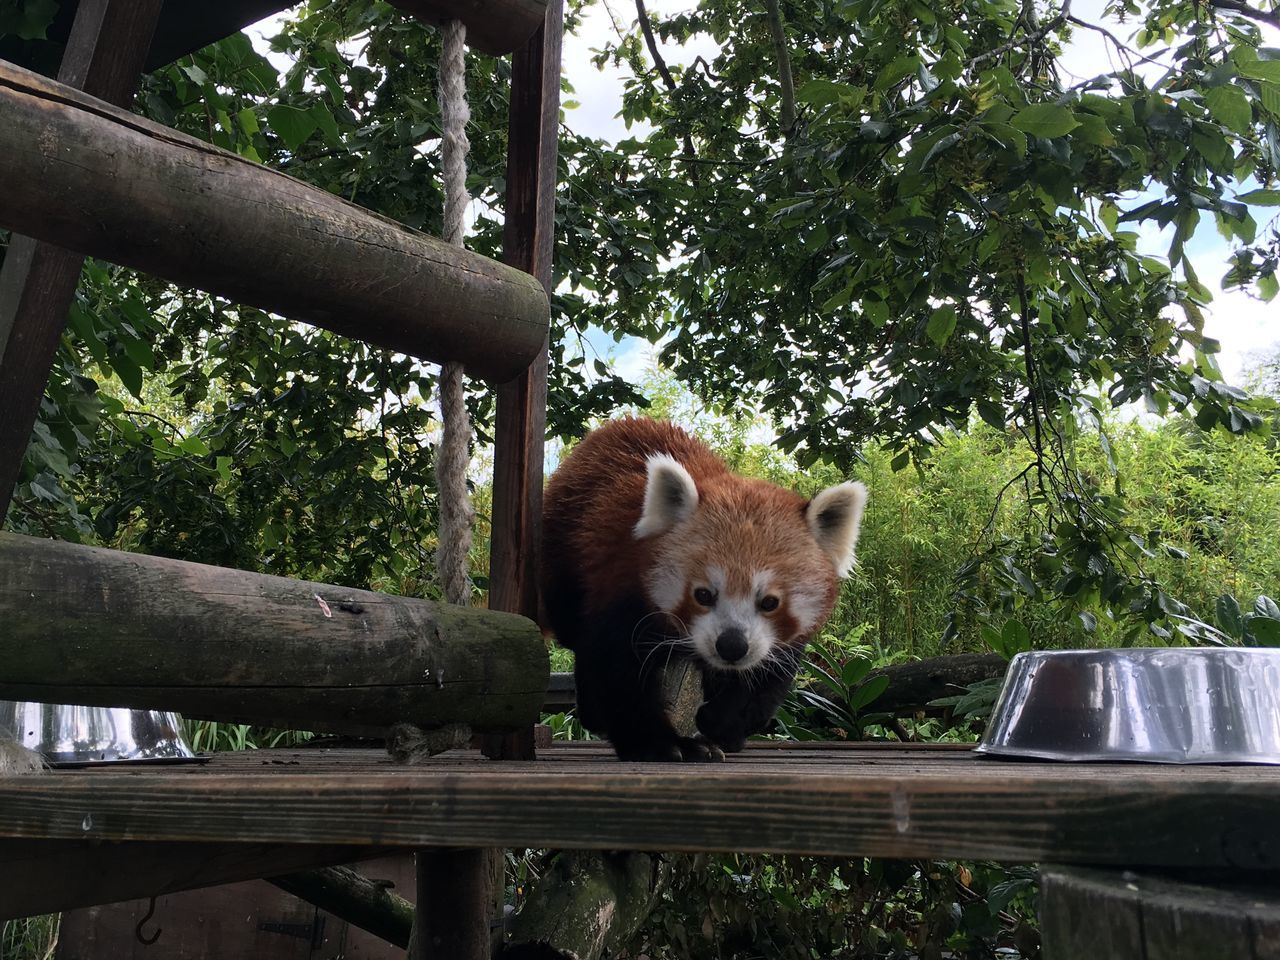 My favourite animal. So beautiful and majestic Animal Themes Animal Wildlife Animals In The Wild Day Mammal Nature No People One Animal Outdoors Panda Panda - Animal Portrait Red Panda Red Panda Tree